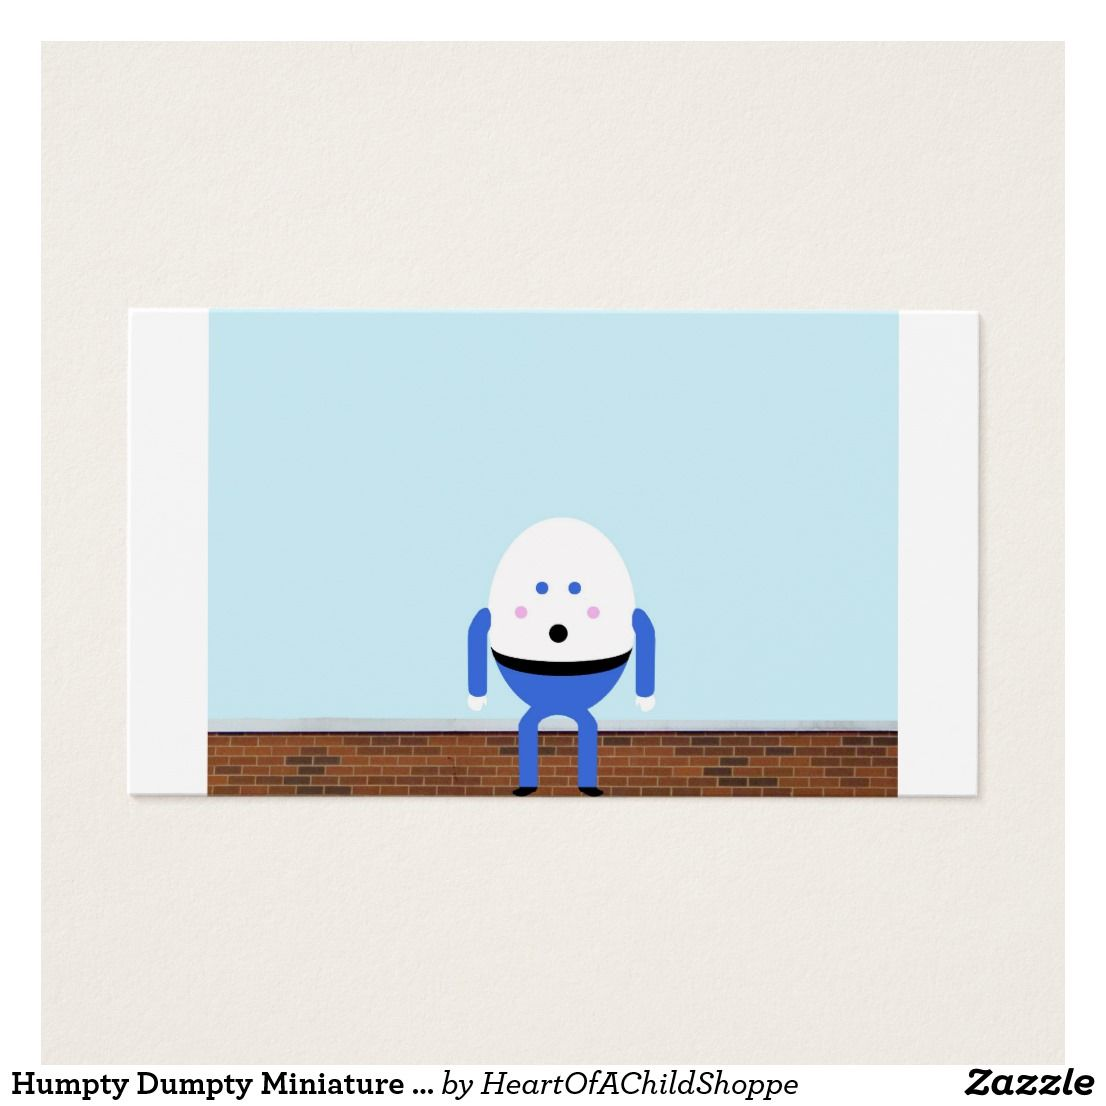 Humpty dumpty miniature dollhouse art business card trim this humpty dumpty miniature dollhouse art business card trim this card frame it and magicingreecefo Gallery